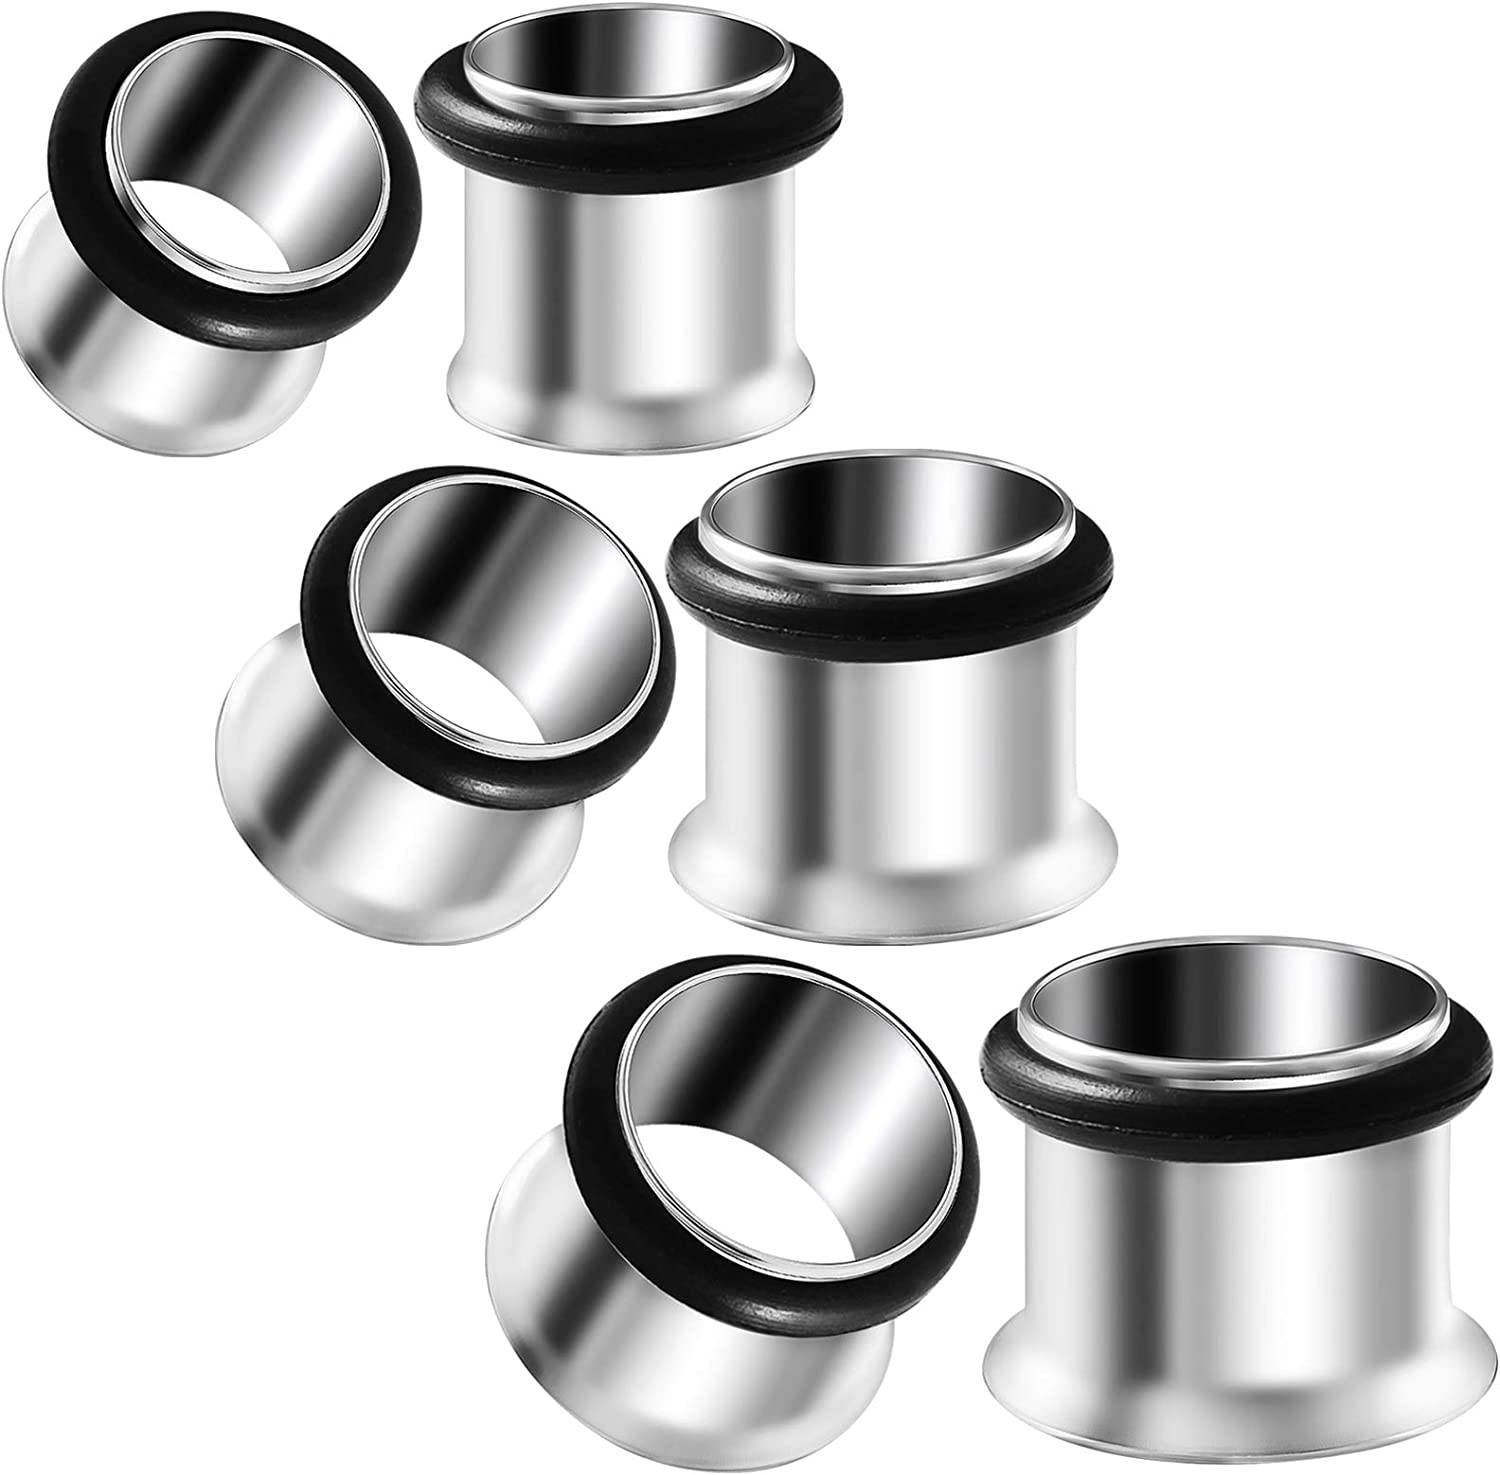 BIG GAUGES 3 Pairs 316L Surgical Steel Single Flared Piercing Jewelry Stretcher Ear Plug O-Ring Earring Lobe Tunnel